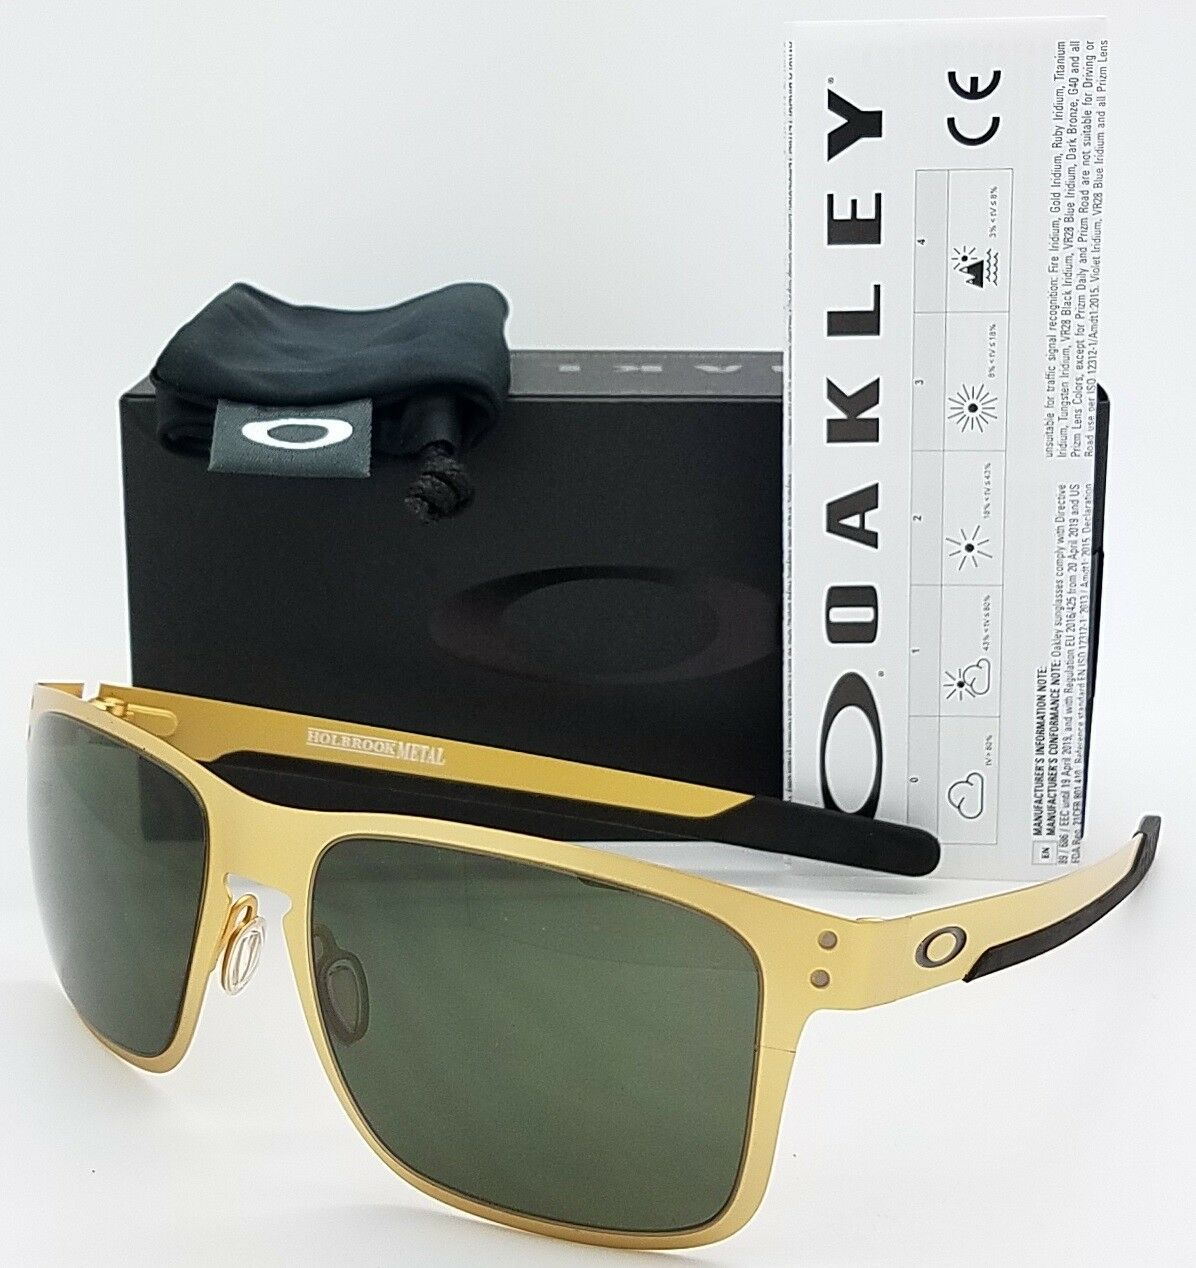 06c62f821c53c Oo4123 0855 Oakley Holbrook Metal Gold Stain dark Gray Sunglasses ...